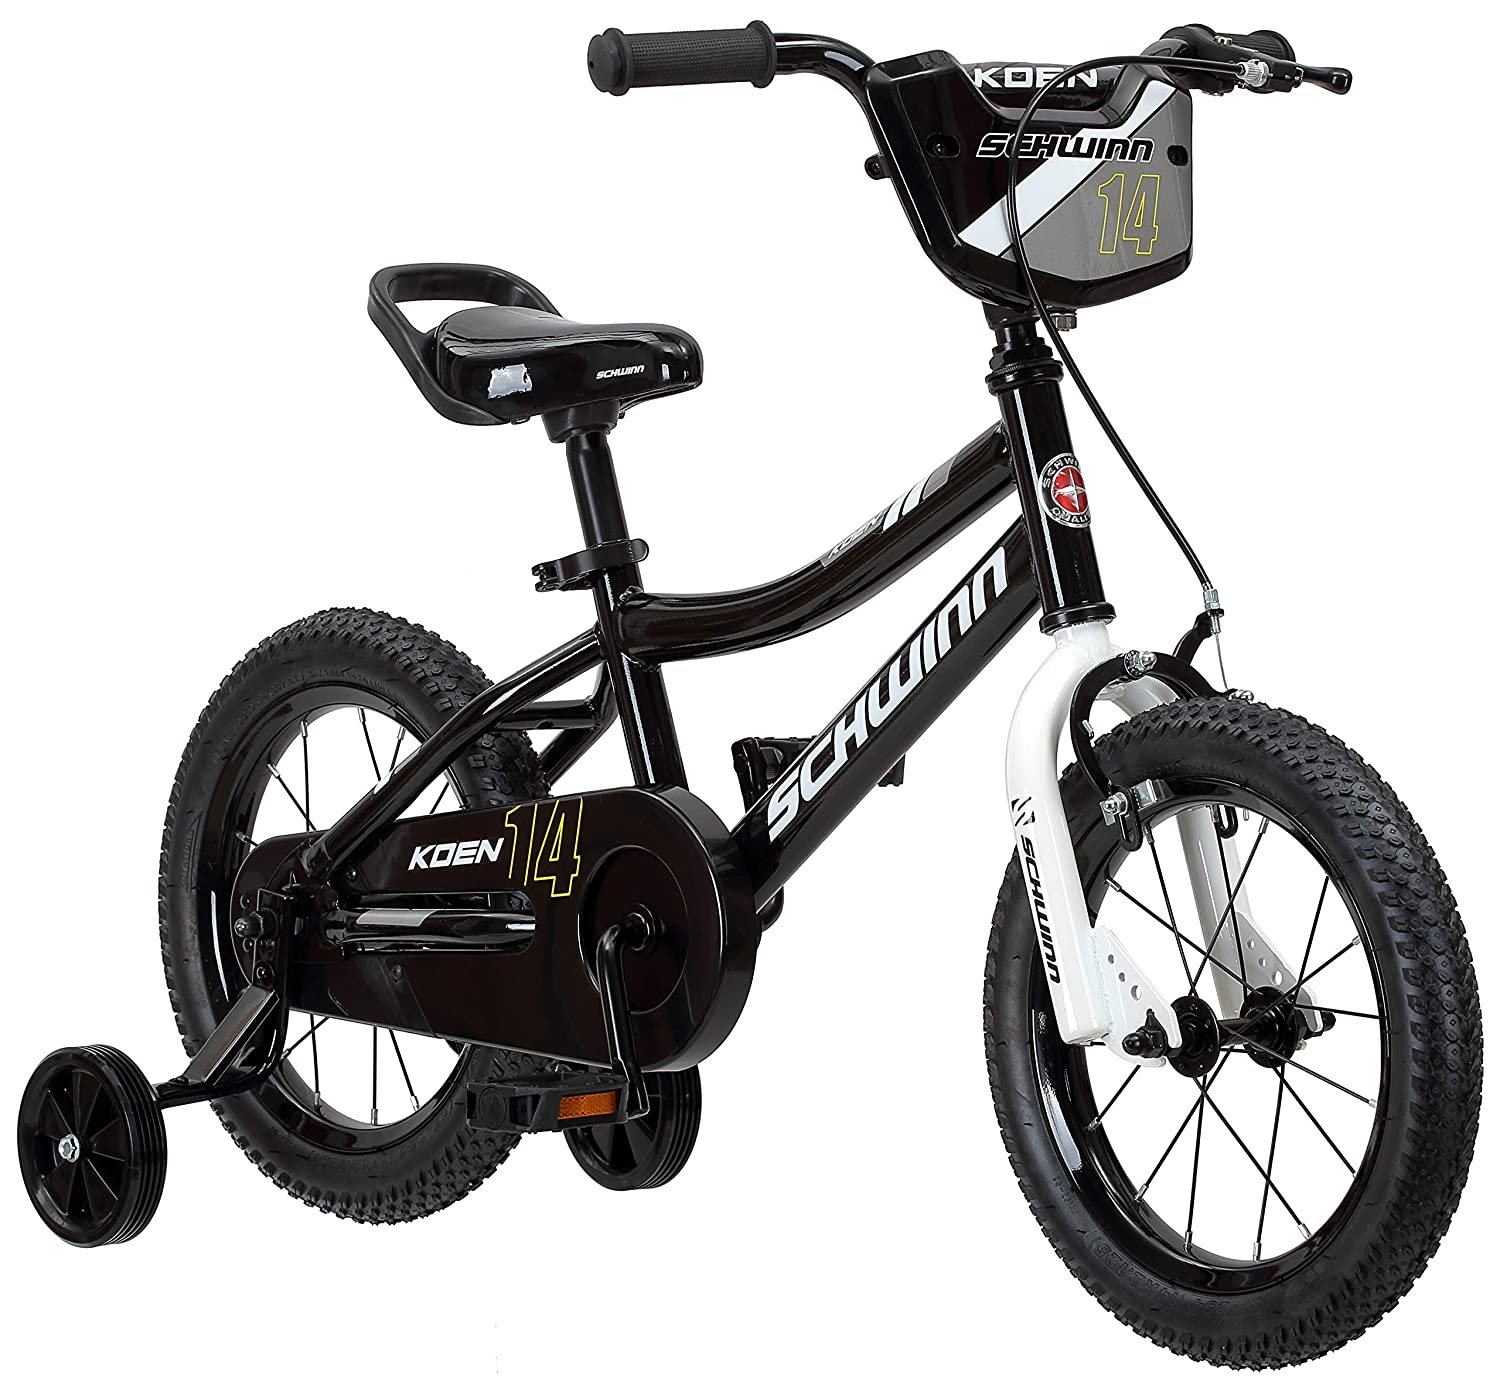 Schwinn Koen Boy's Bike with SmartStart, 12-14-16-18-20-inch Wheels, Multiple Colors Available 12 Wheels Black S0266AZ